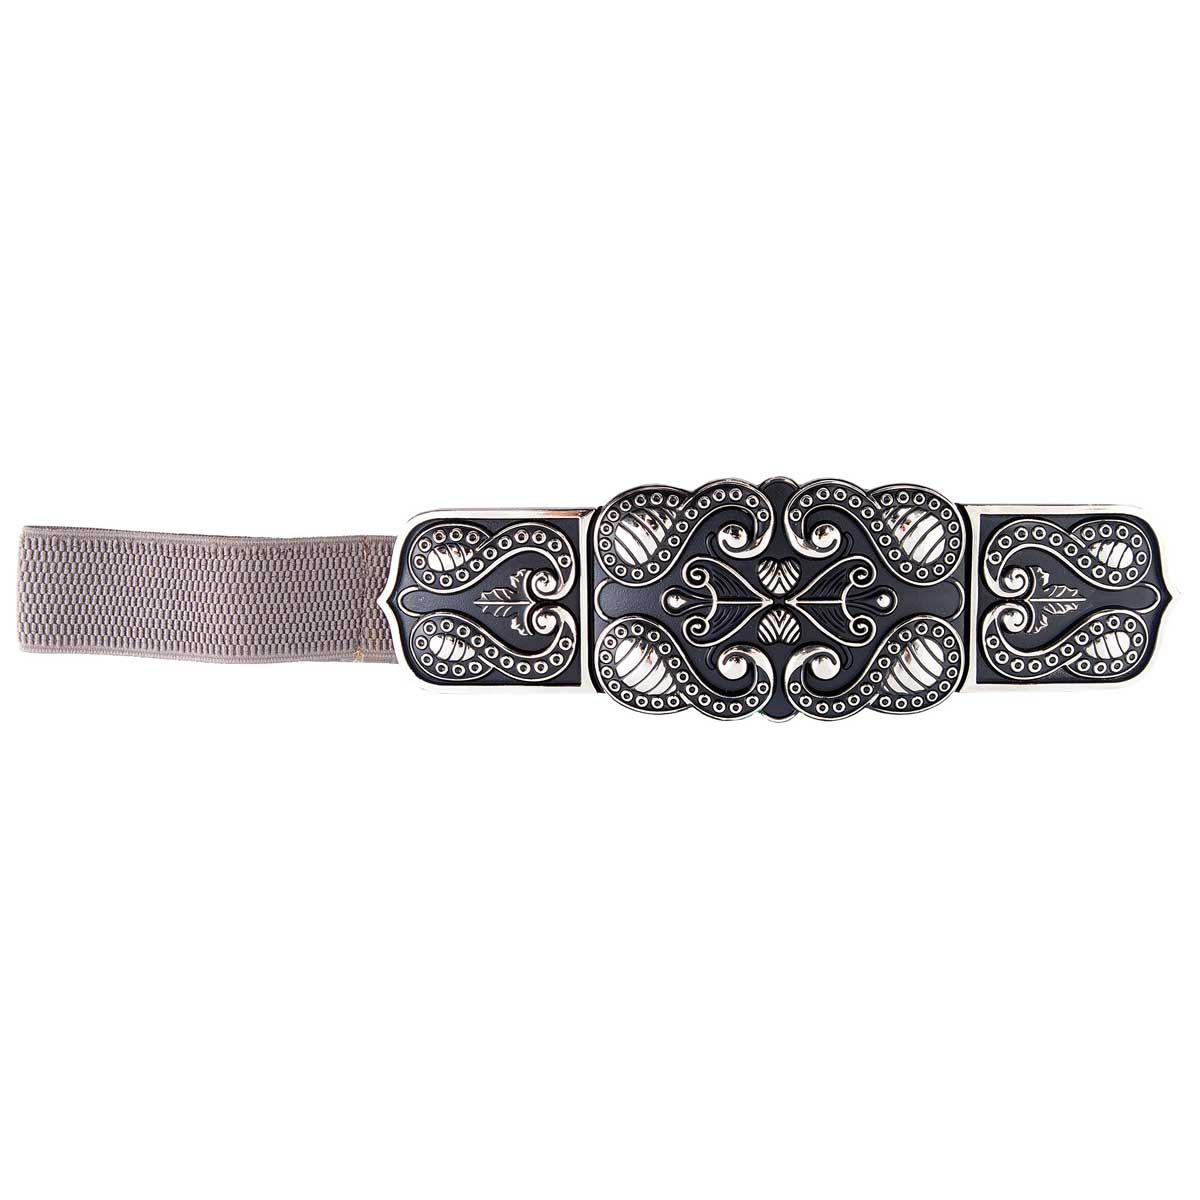 GRAY STRETCH BELT WITH ANTIQUE GOLDTONE SCROLL BUCKLE